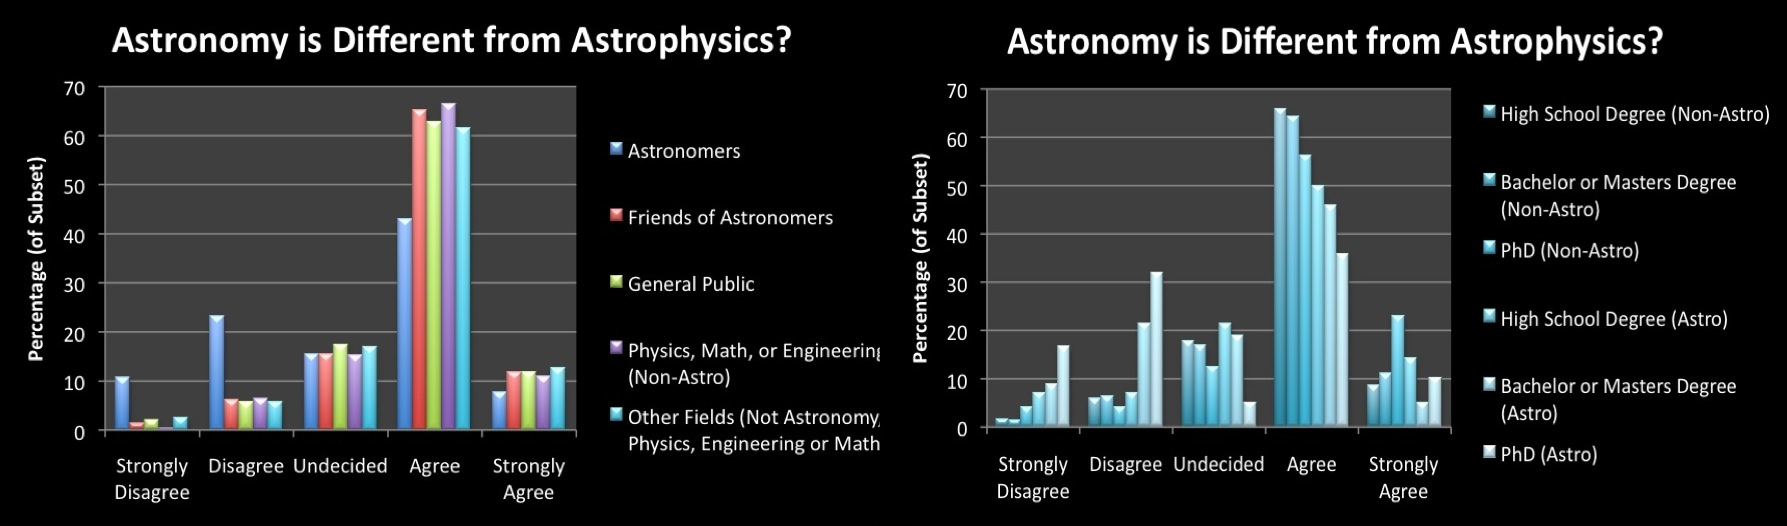 What is the main difference between astro physics and astronomy?